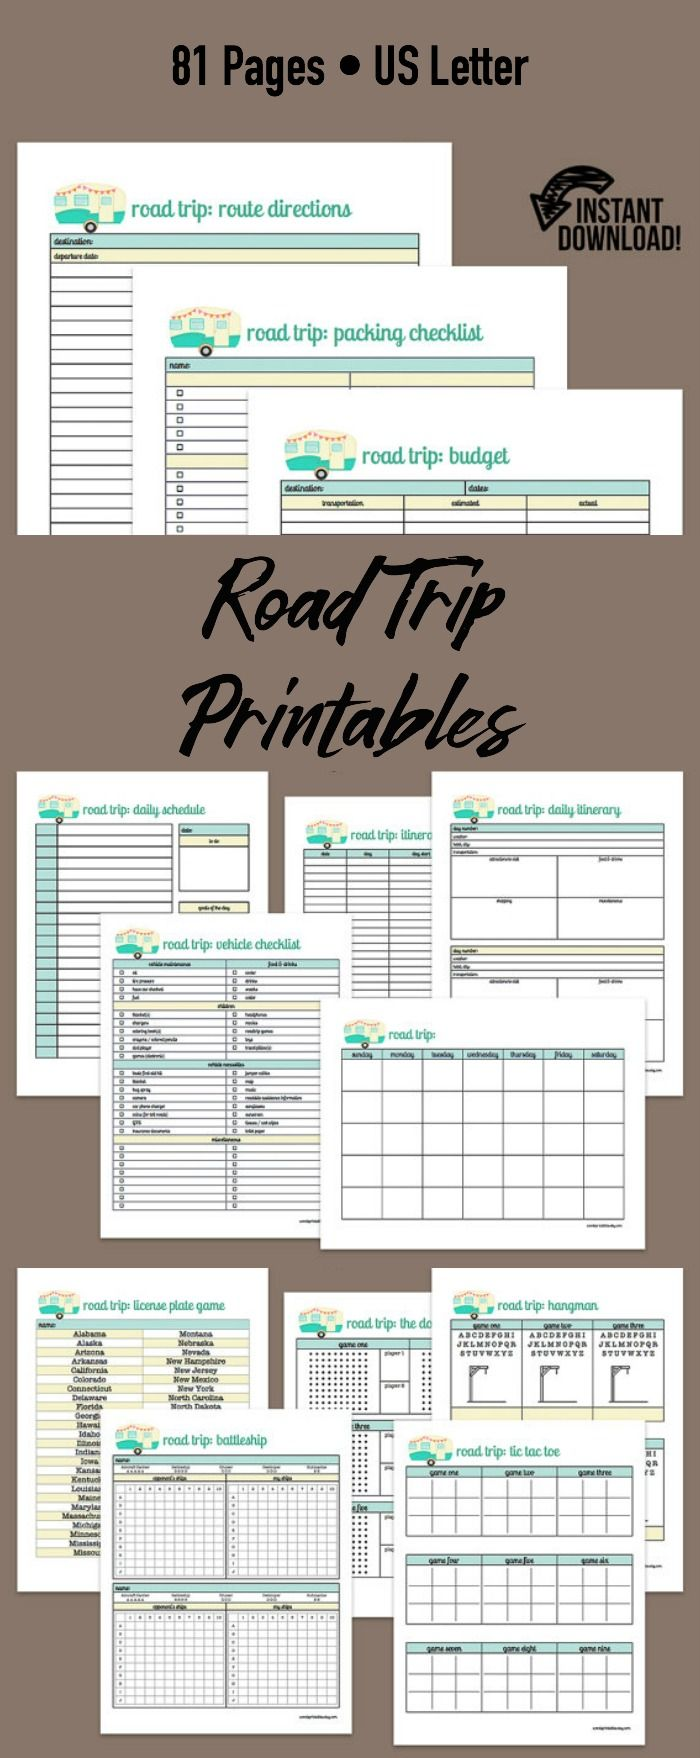 Road Trip Printable Kit - Includes:: • Road Trip • Budget, Expenses • Calendar, Itinerary, Schedule • Games, Entertainment • Important Papers • Notes, Journal, To Do • Packing, Checklists • Planning, Attractions, Reviews, Trip Information, Vehicle • Directions, Lodging, Map, Route #ad #printables #roadtrip #tripplanner